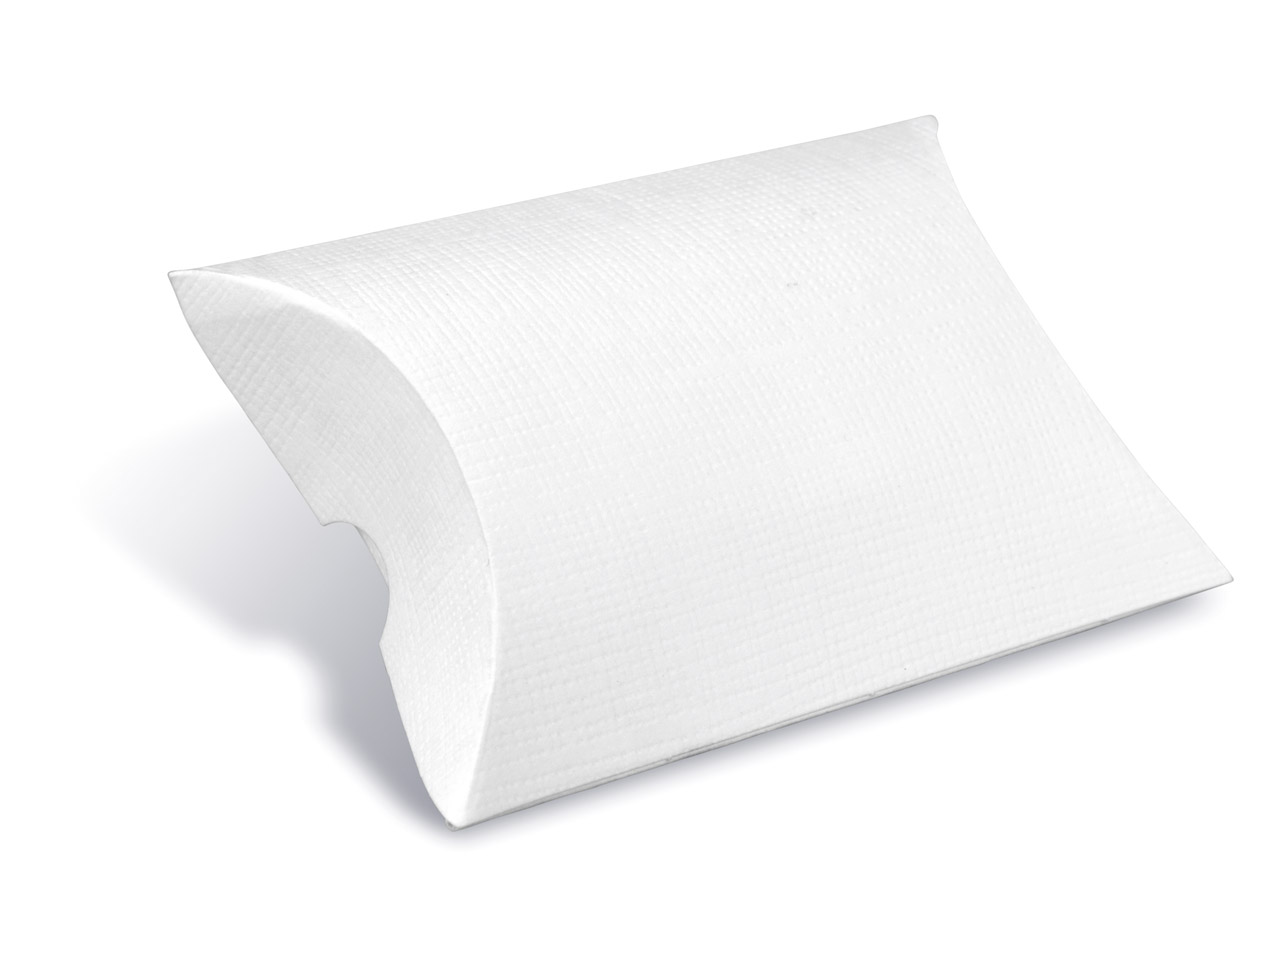 Flat Pack Pillow Box White         Pack of 10